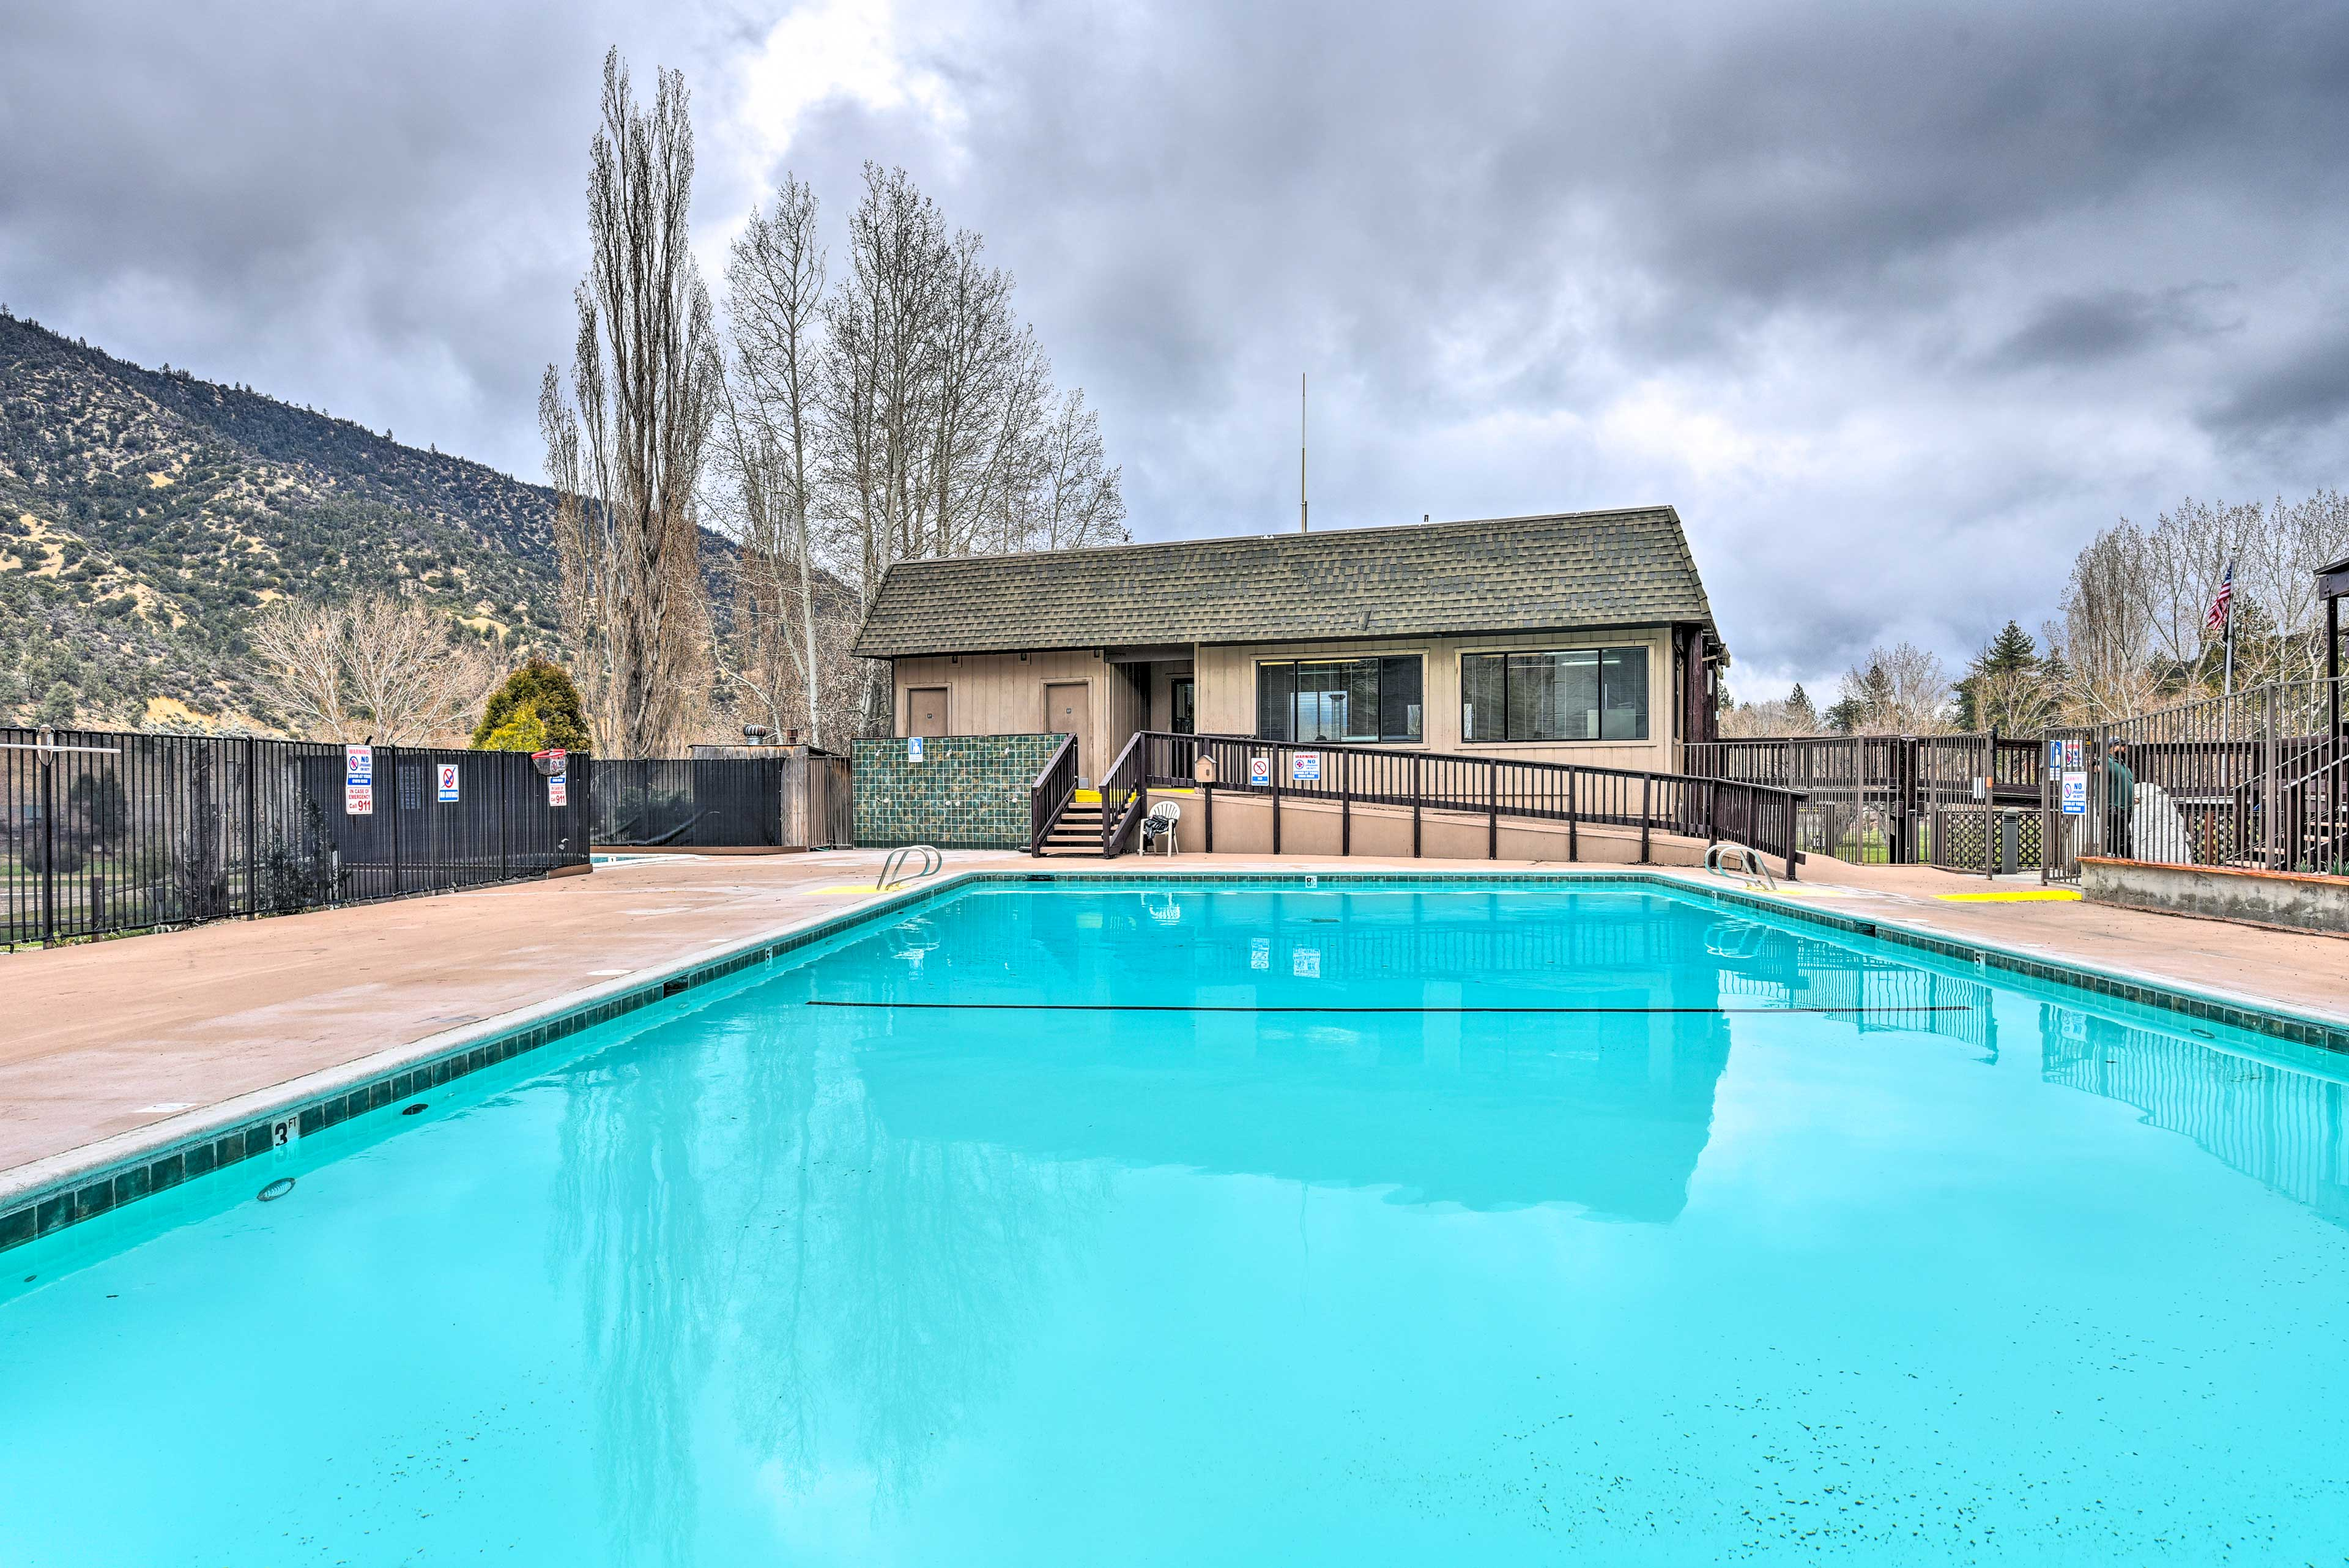 You can't beat resort-style amenities in a mountainous location!